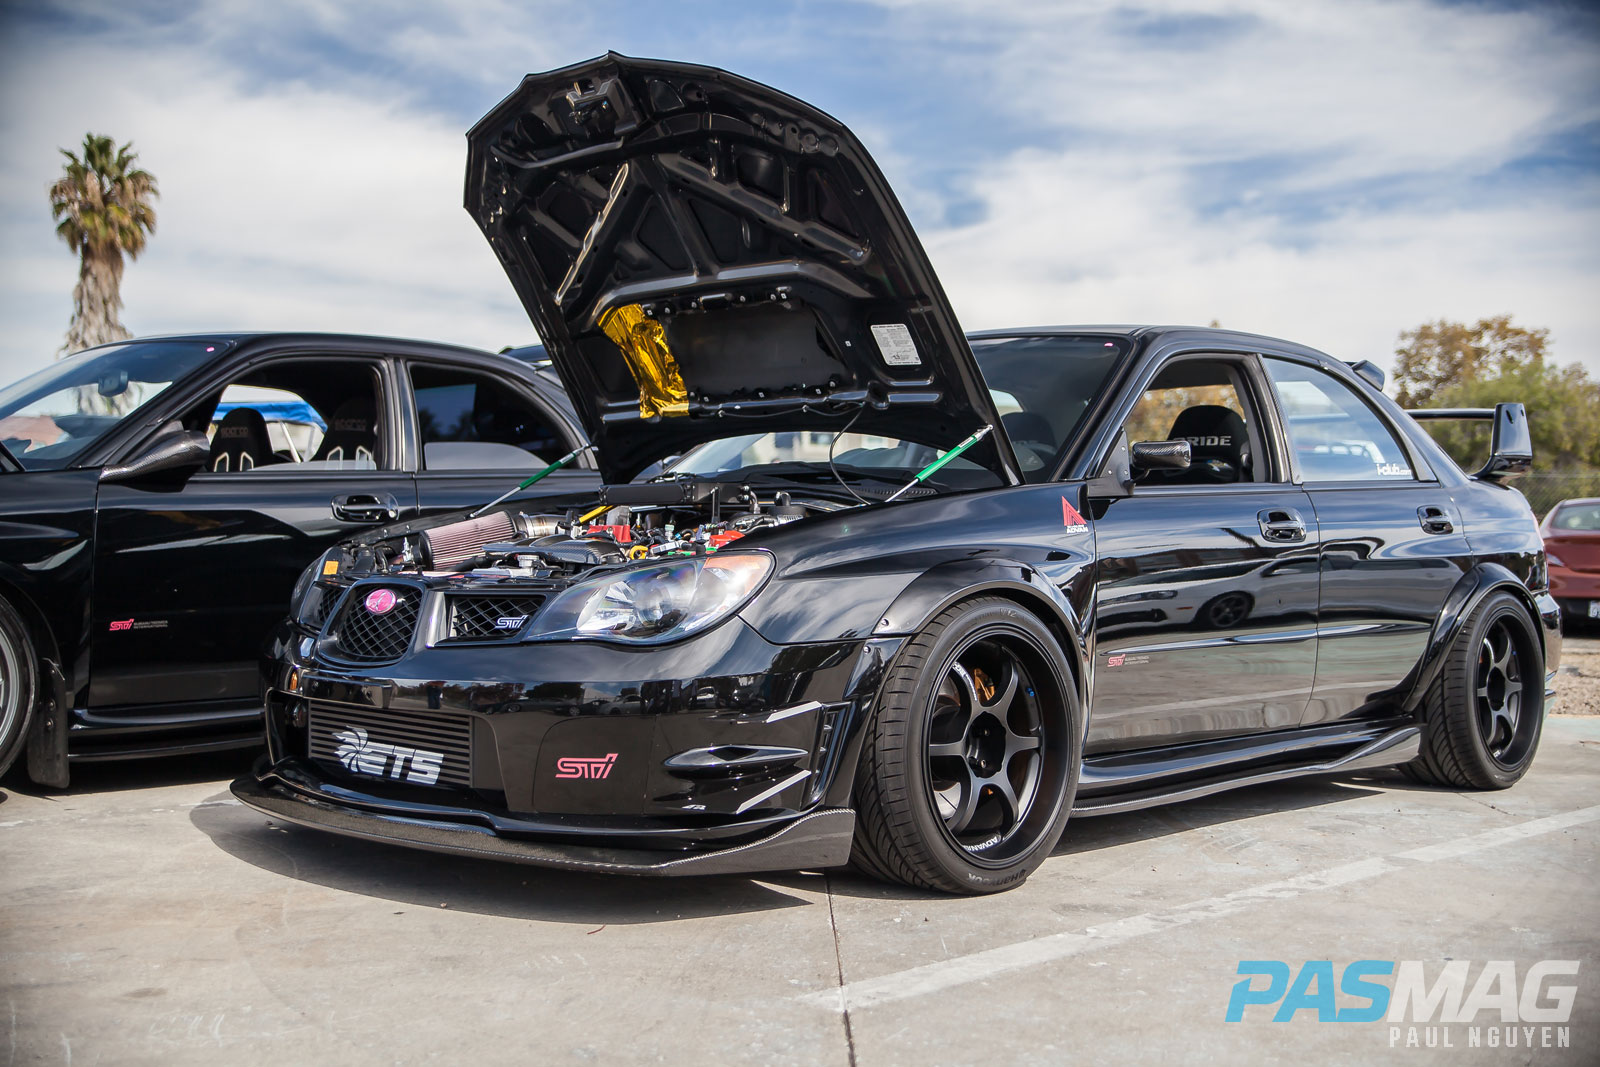 PASMAG Trending Haters Gonna Hate Subaru WRX STI Stance 10